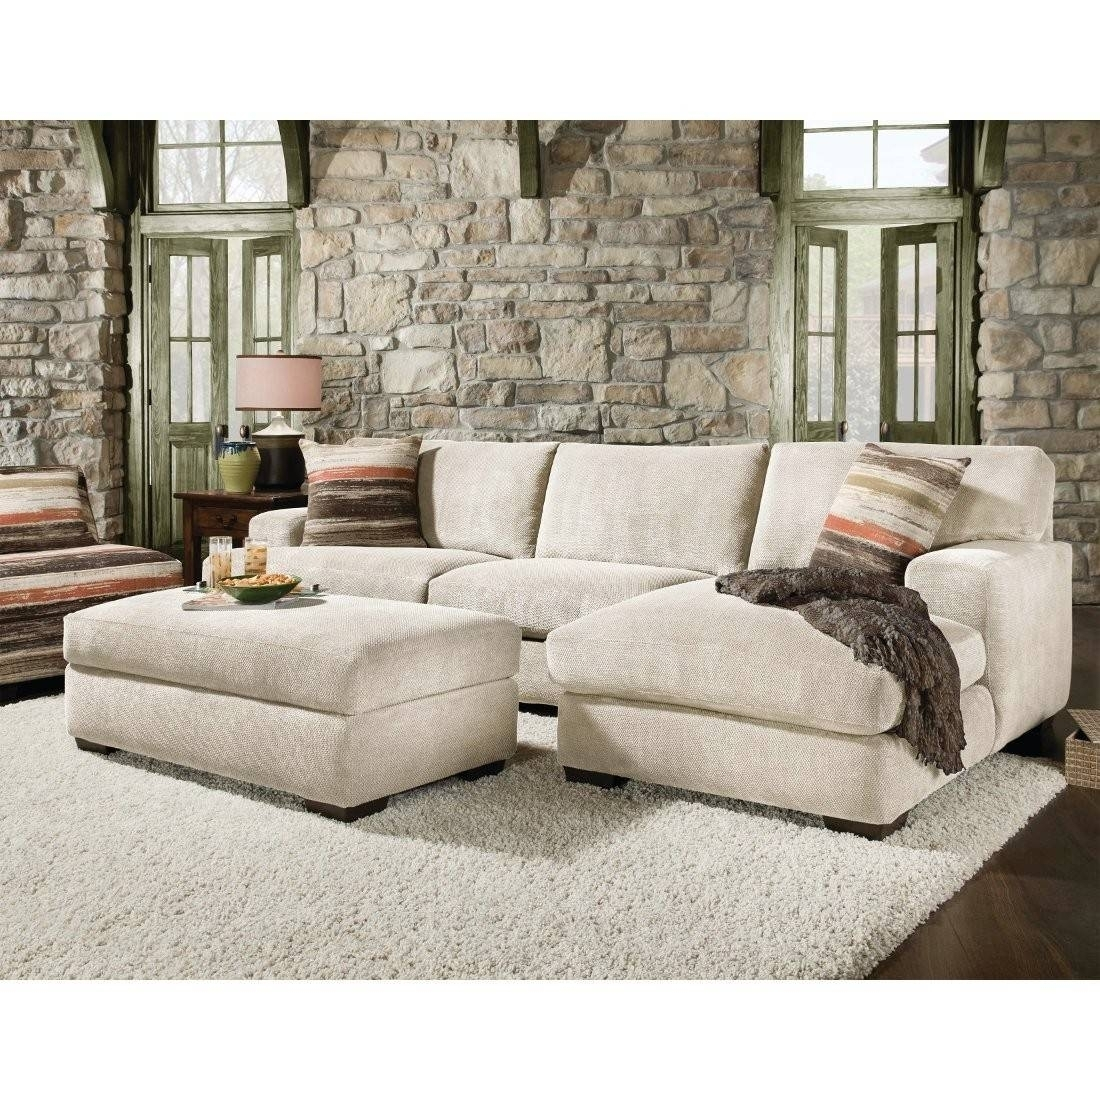 Beautiful Down Filled Sectional Sofa 75 For Your Modern Sofa Ideas Inside Down Filled Sectional Sofas (View 6 of 10)